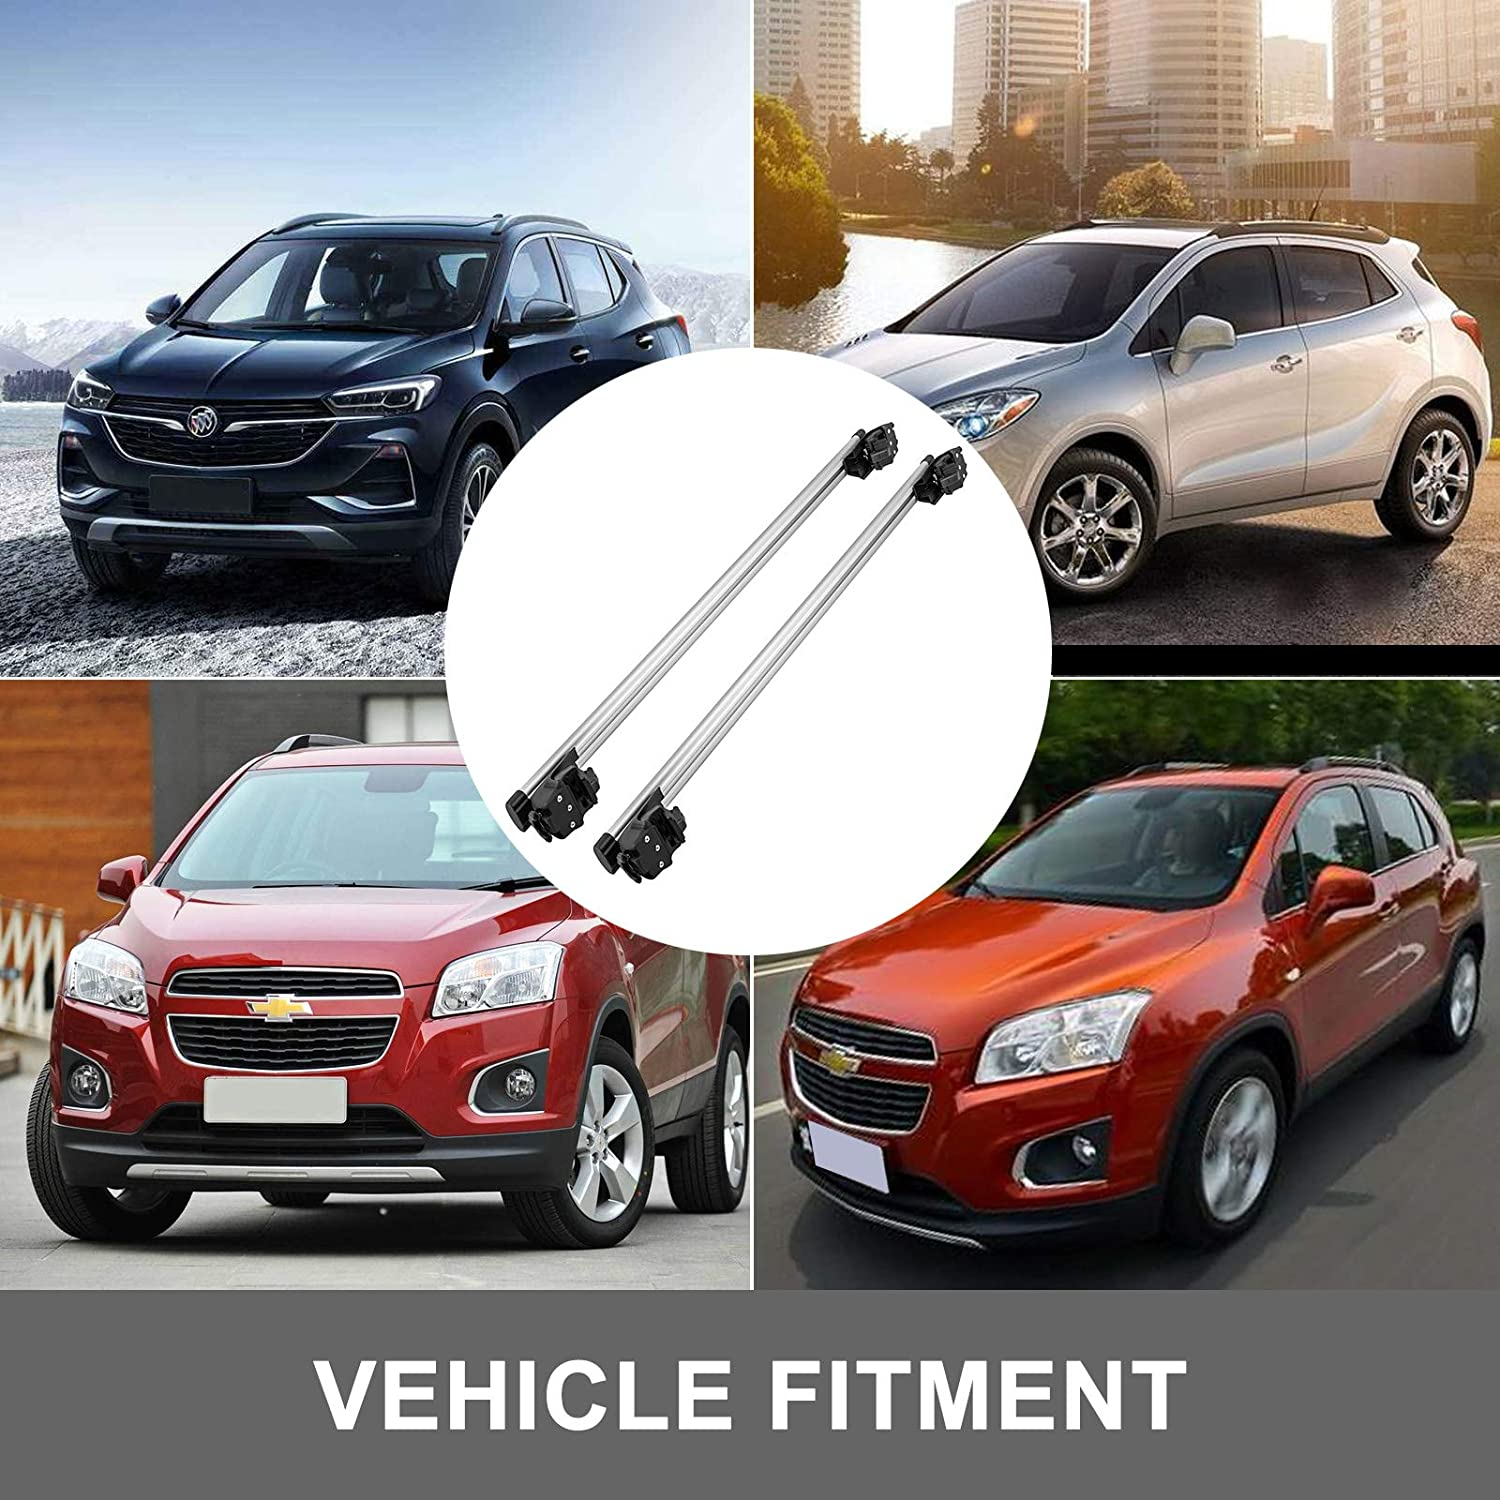 Mophorn Roof Rack Crossbars 51.3 Length Cross Bars Roof Rack 2 pieces Roof Rack Cross Bars Silver Crosstrek Crossbars 3.9 Width for Buick Encore Chevrolet Trax 2013-2019